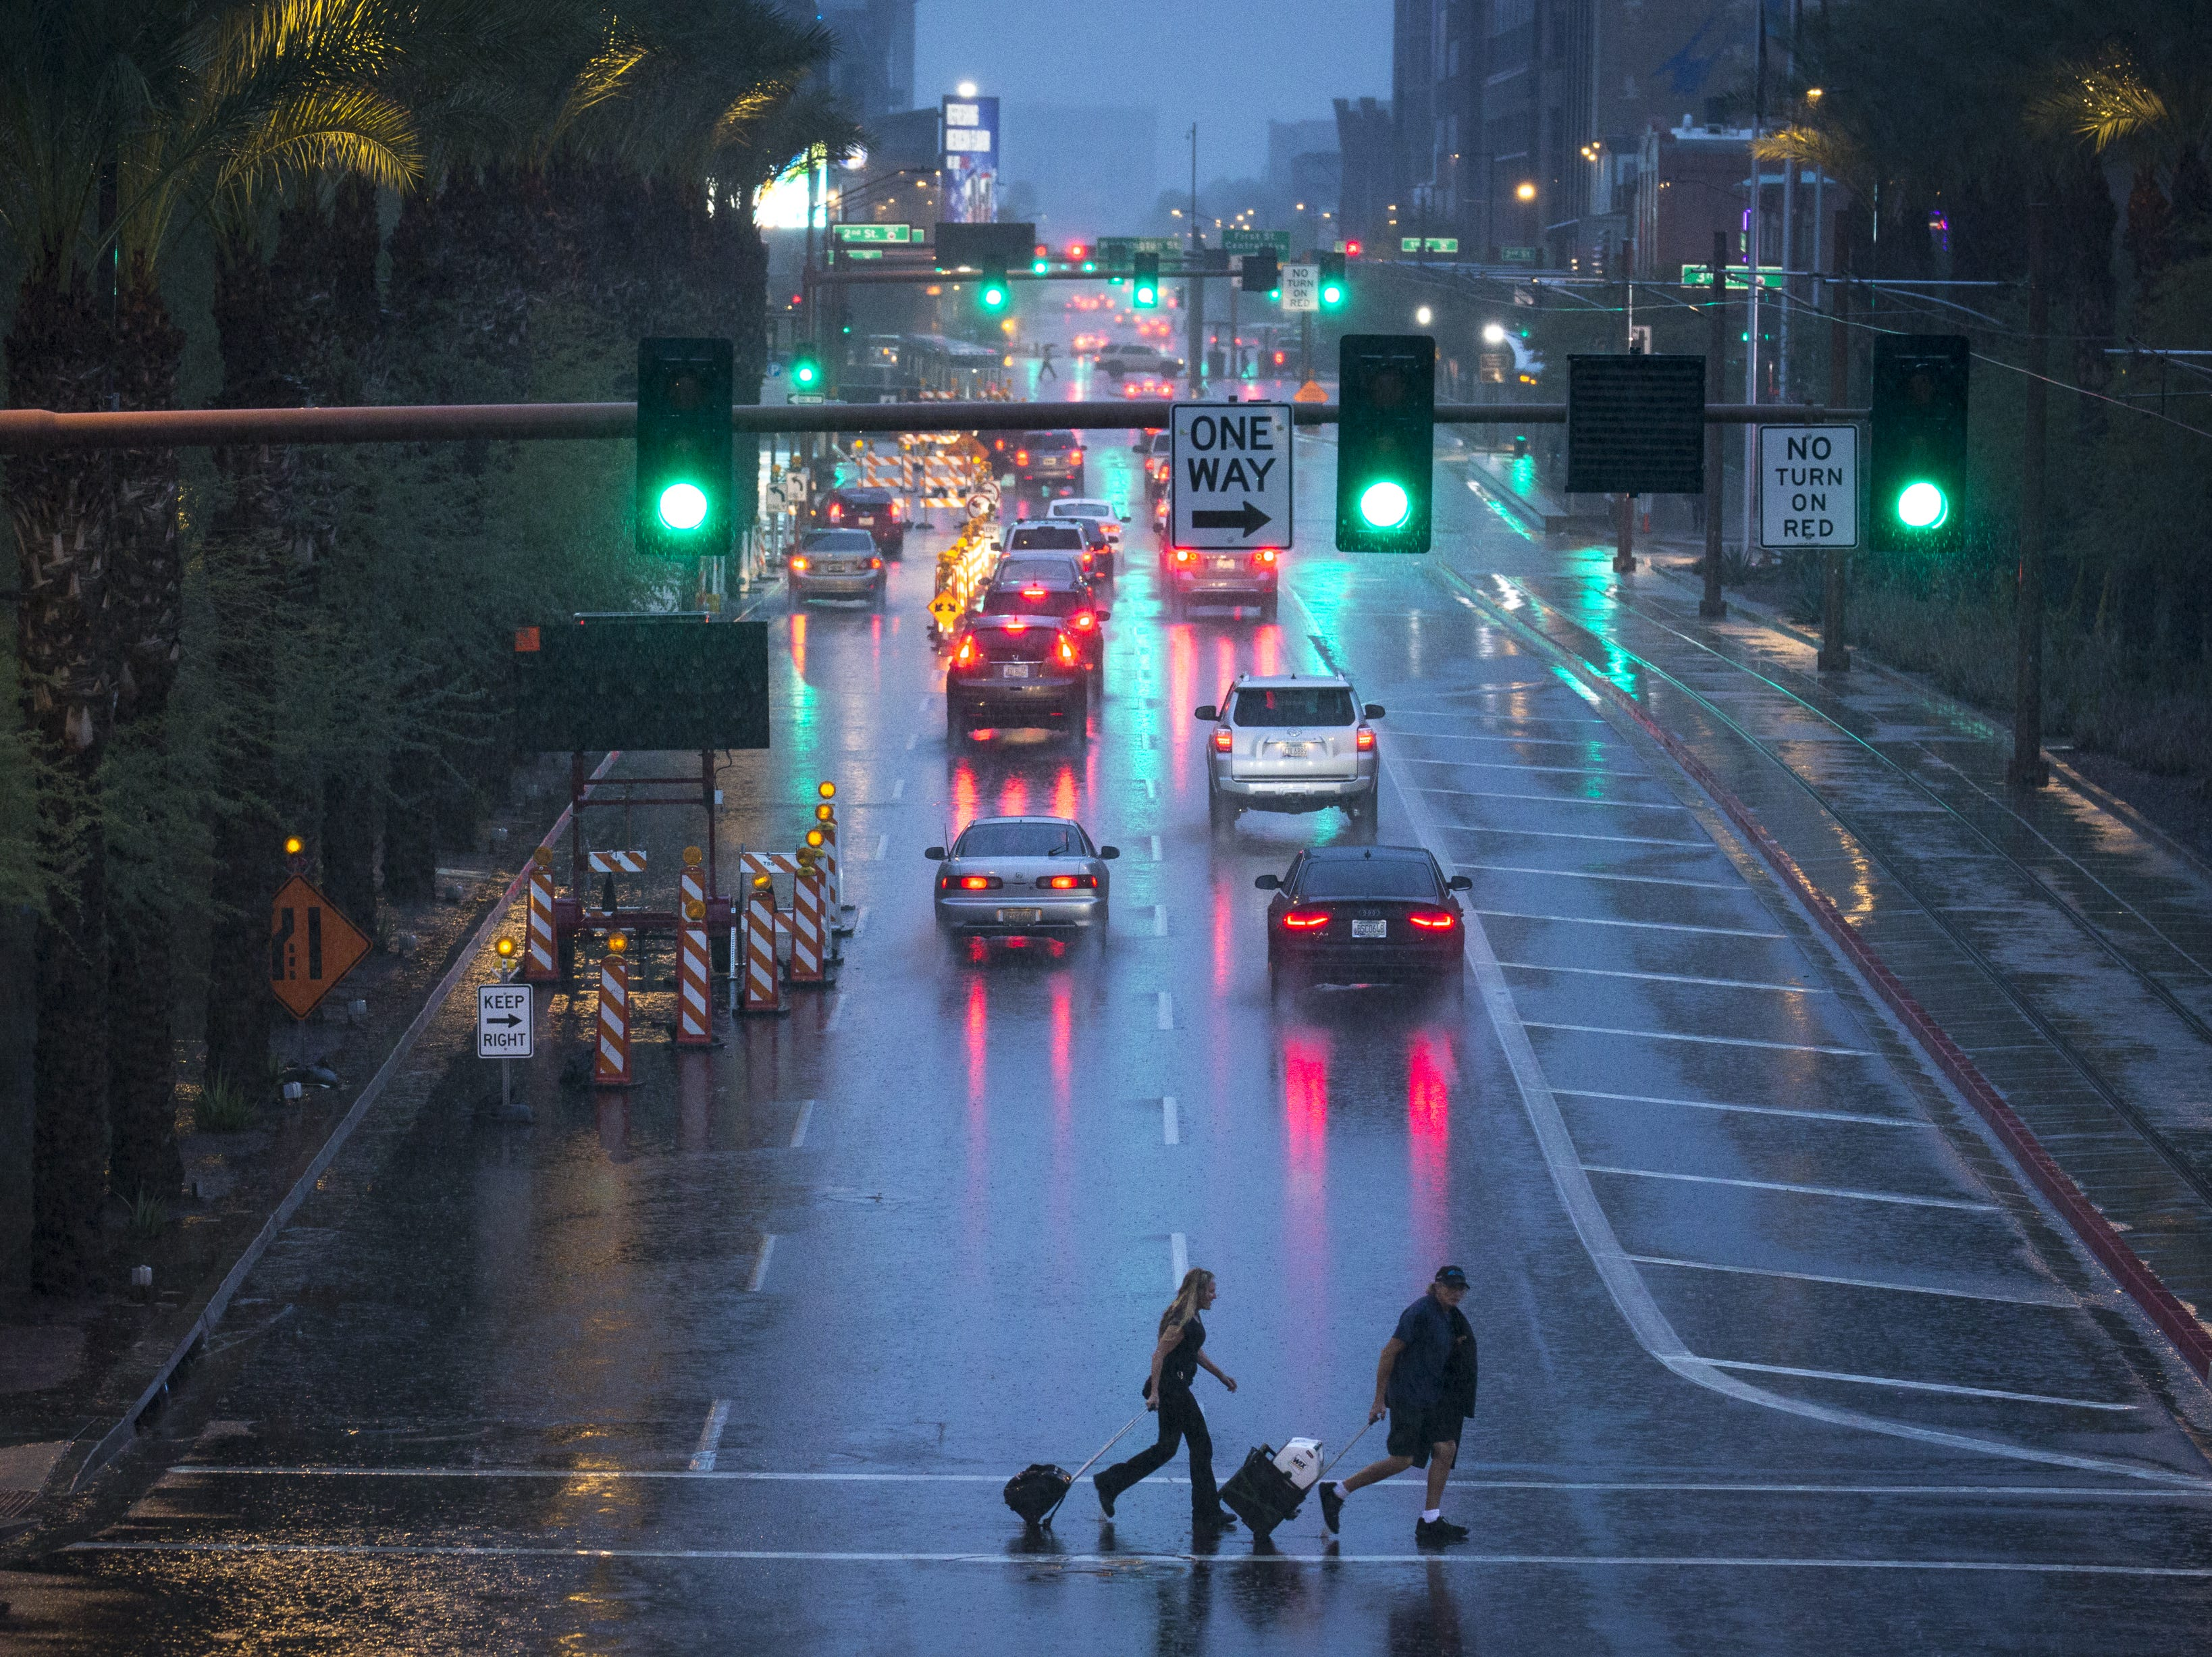 Pedestrians cross Washington Street in the rain, Oct. 2, 2018, in Phoenix.